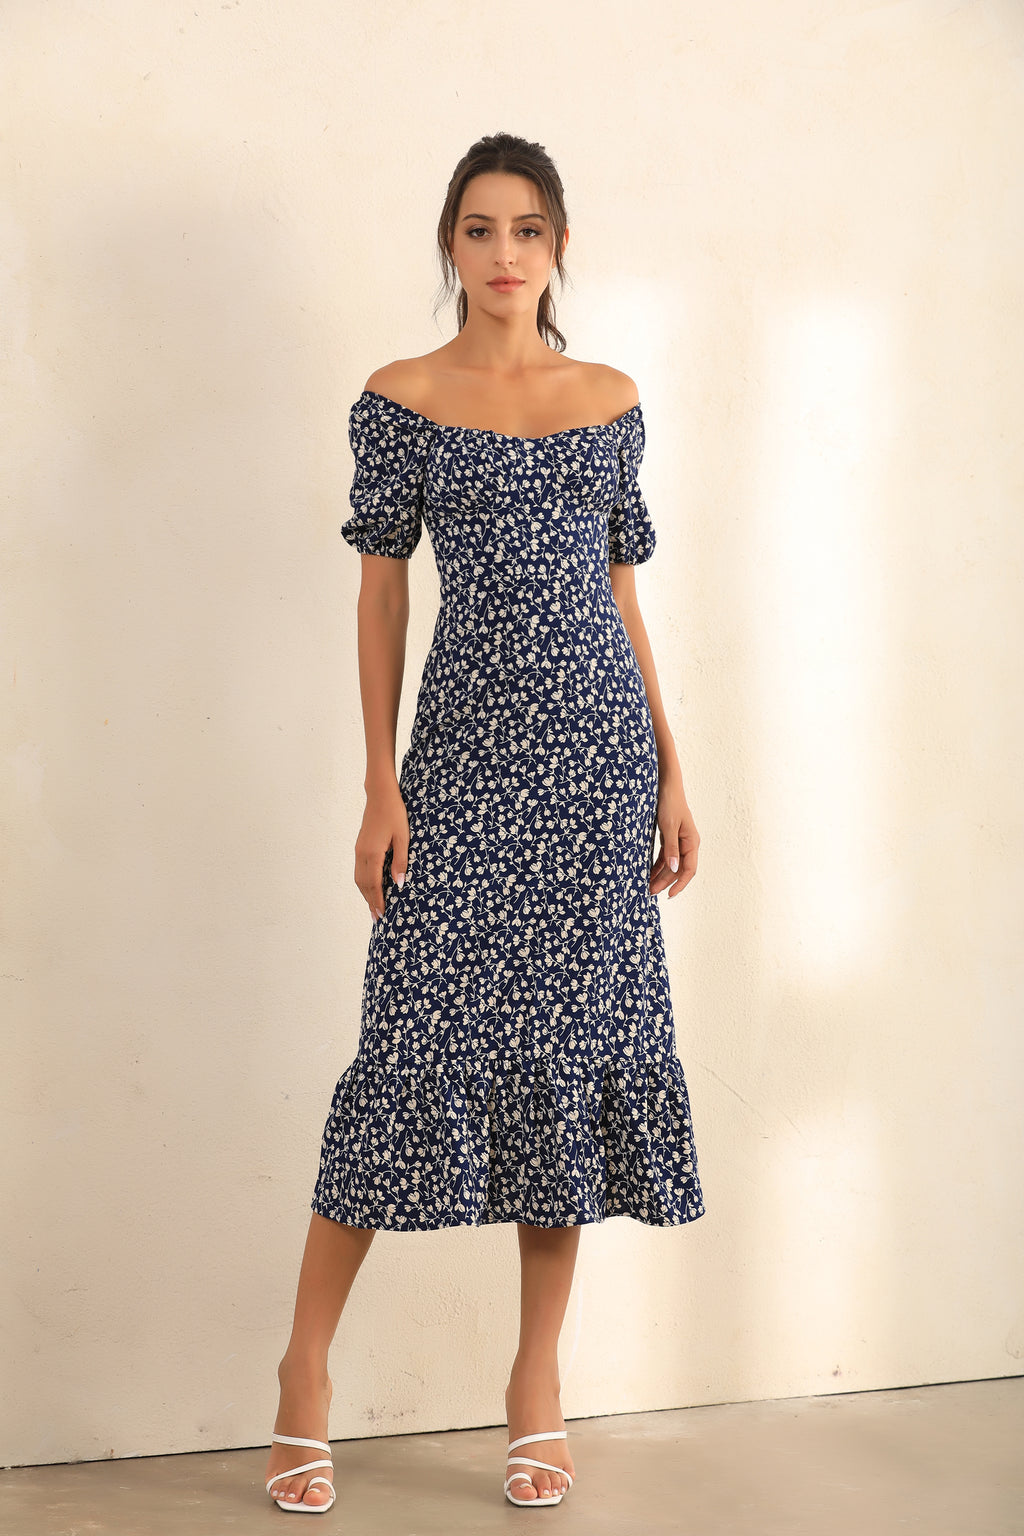 Floral Print Puff Shoulder | Bardot Ruffle Hem Midi Dress In Navy - Miss Floral